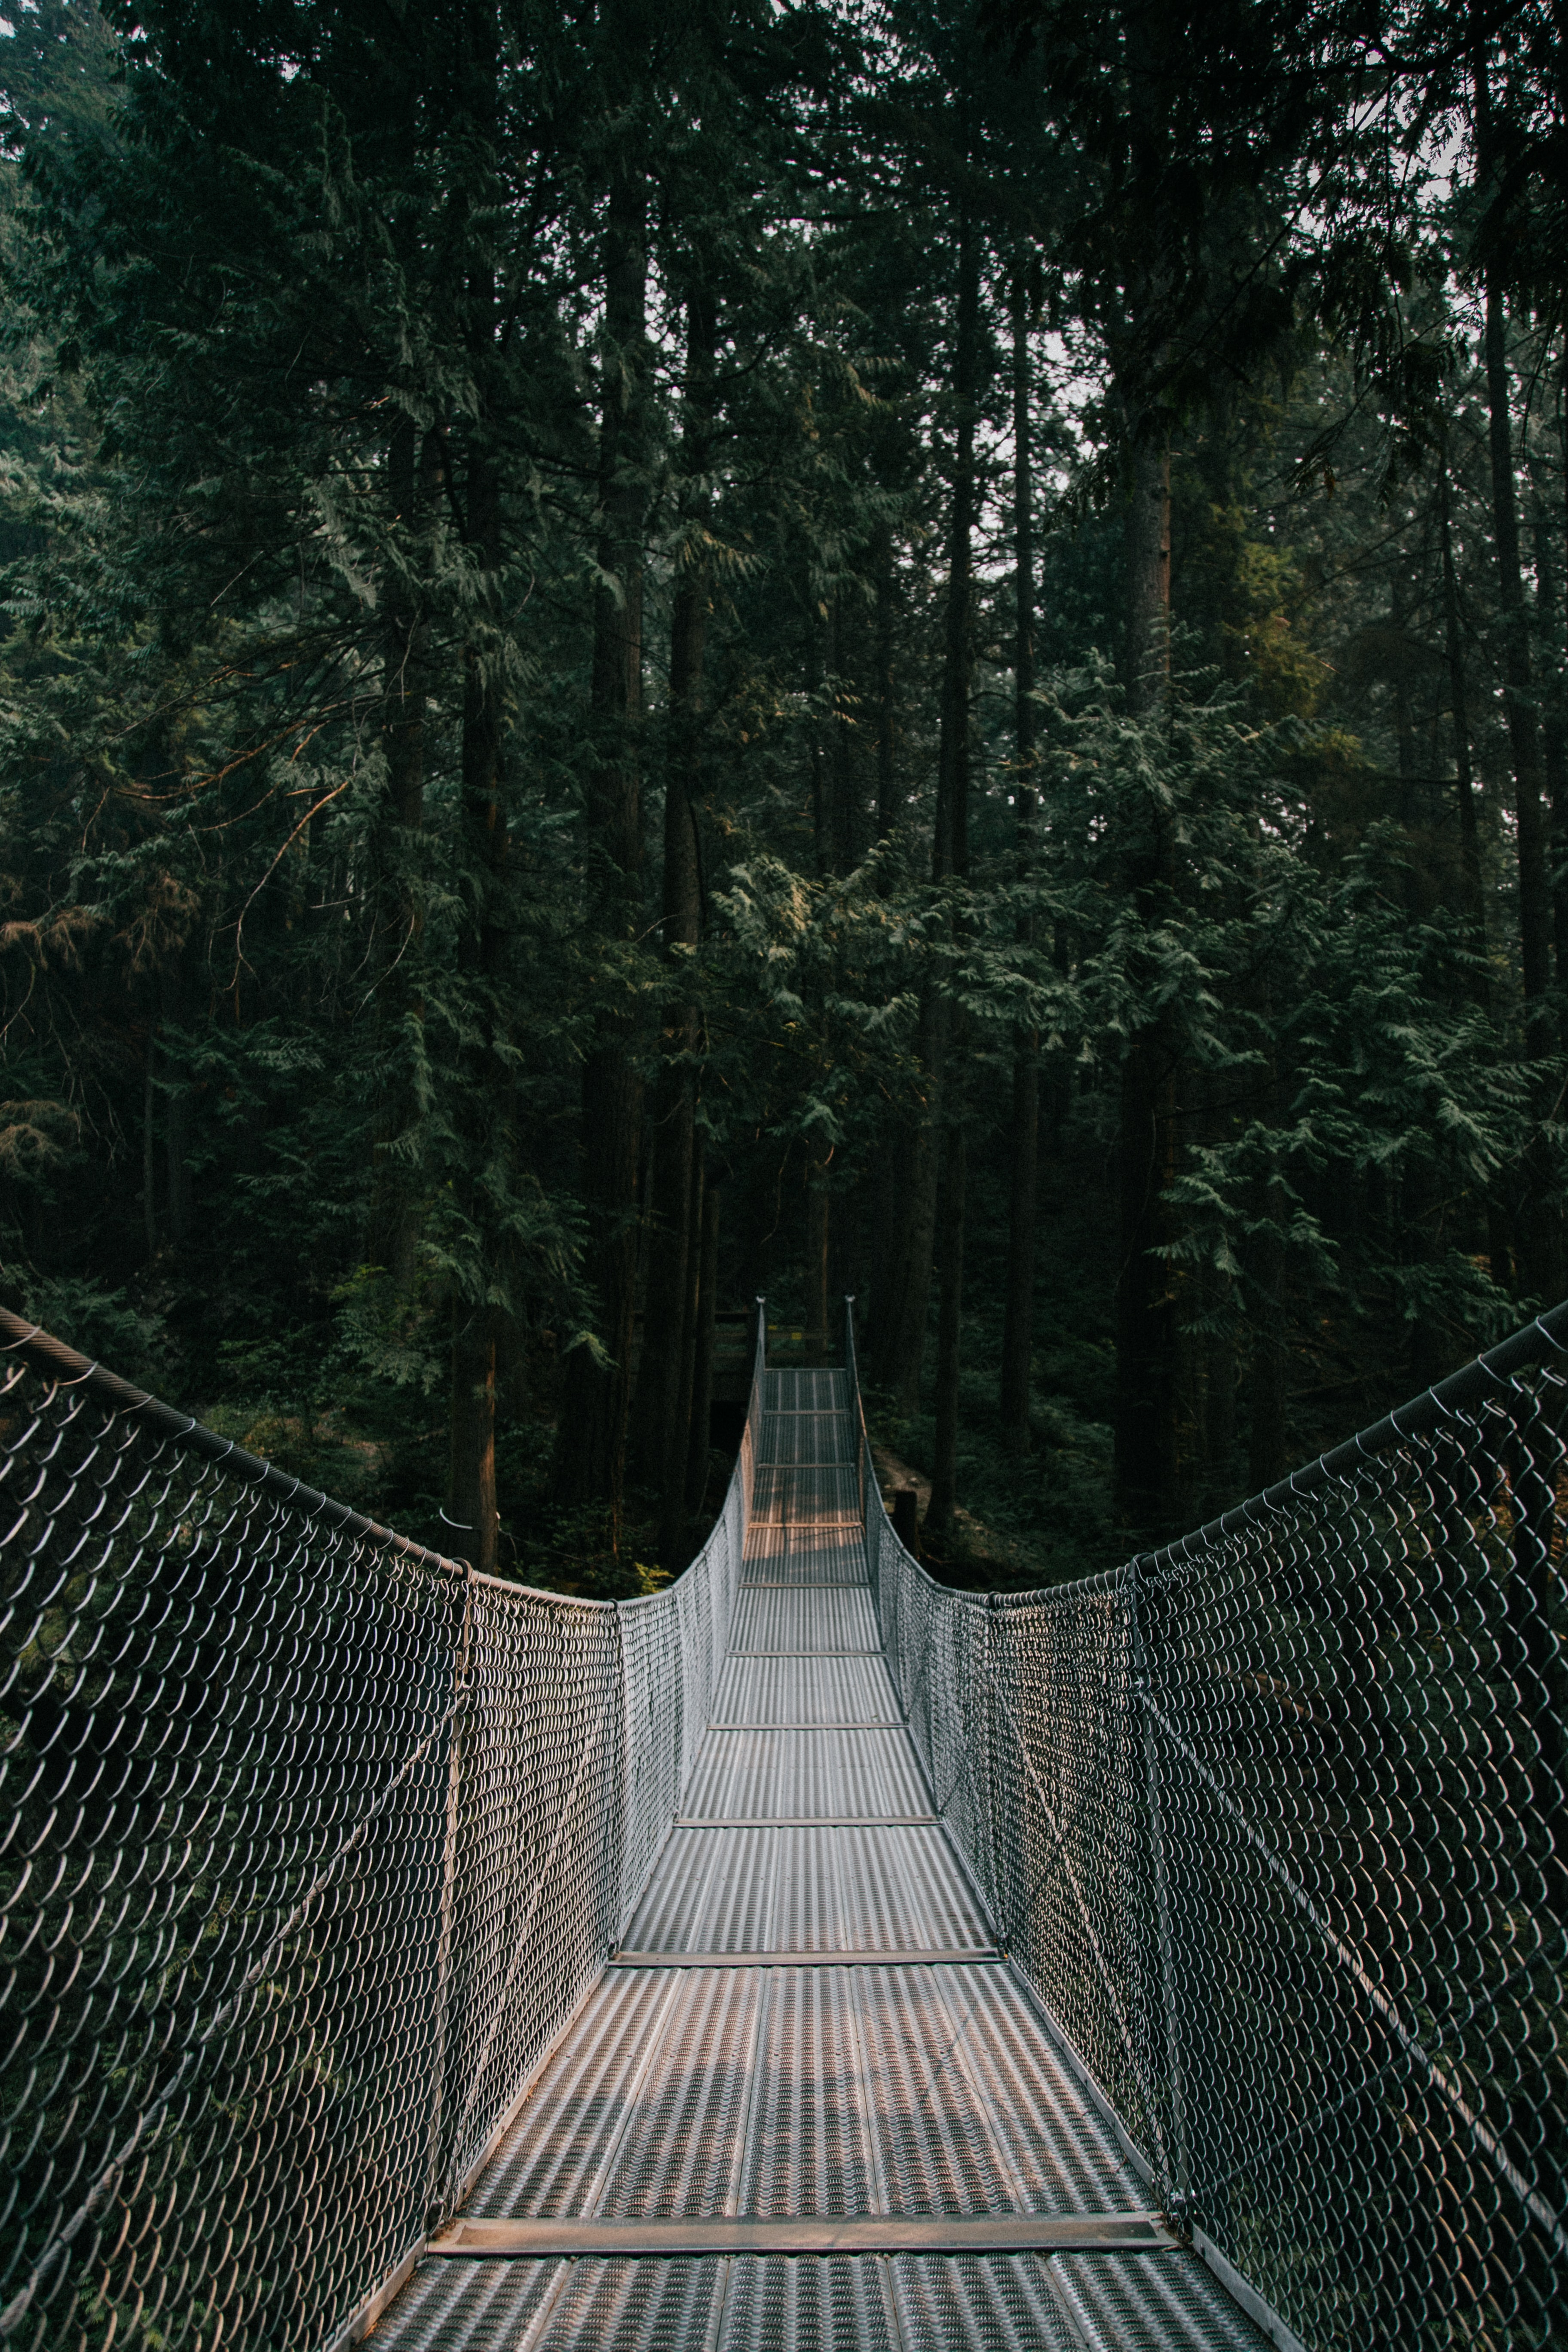 gray and brown hanging bridge on between trees at daytime